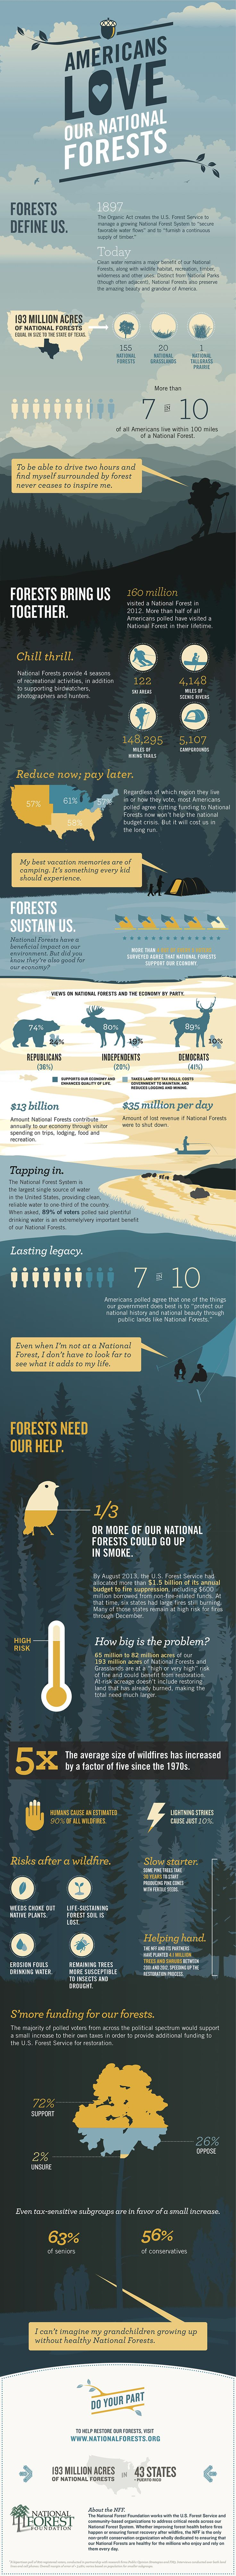 best ideas about forest conservation gaurdians americans love our national forests see just how much in the infographic